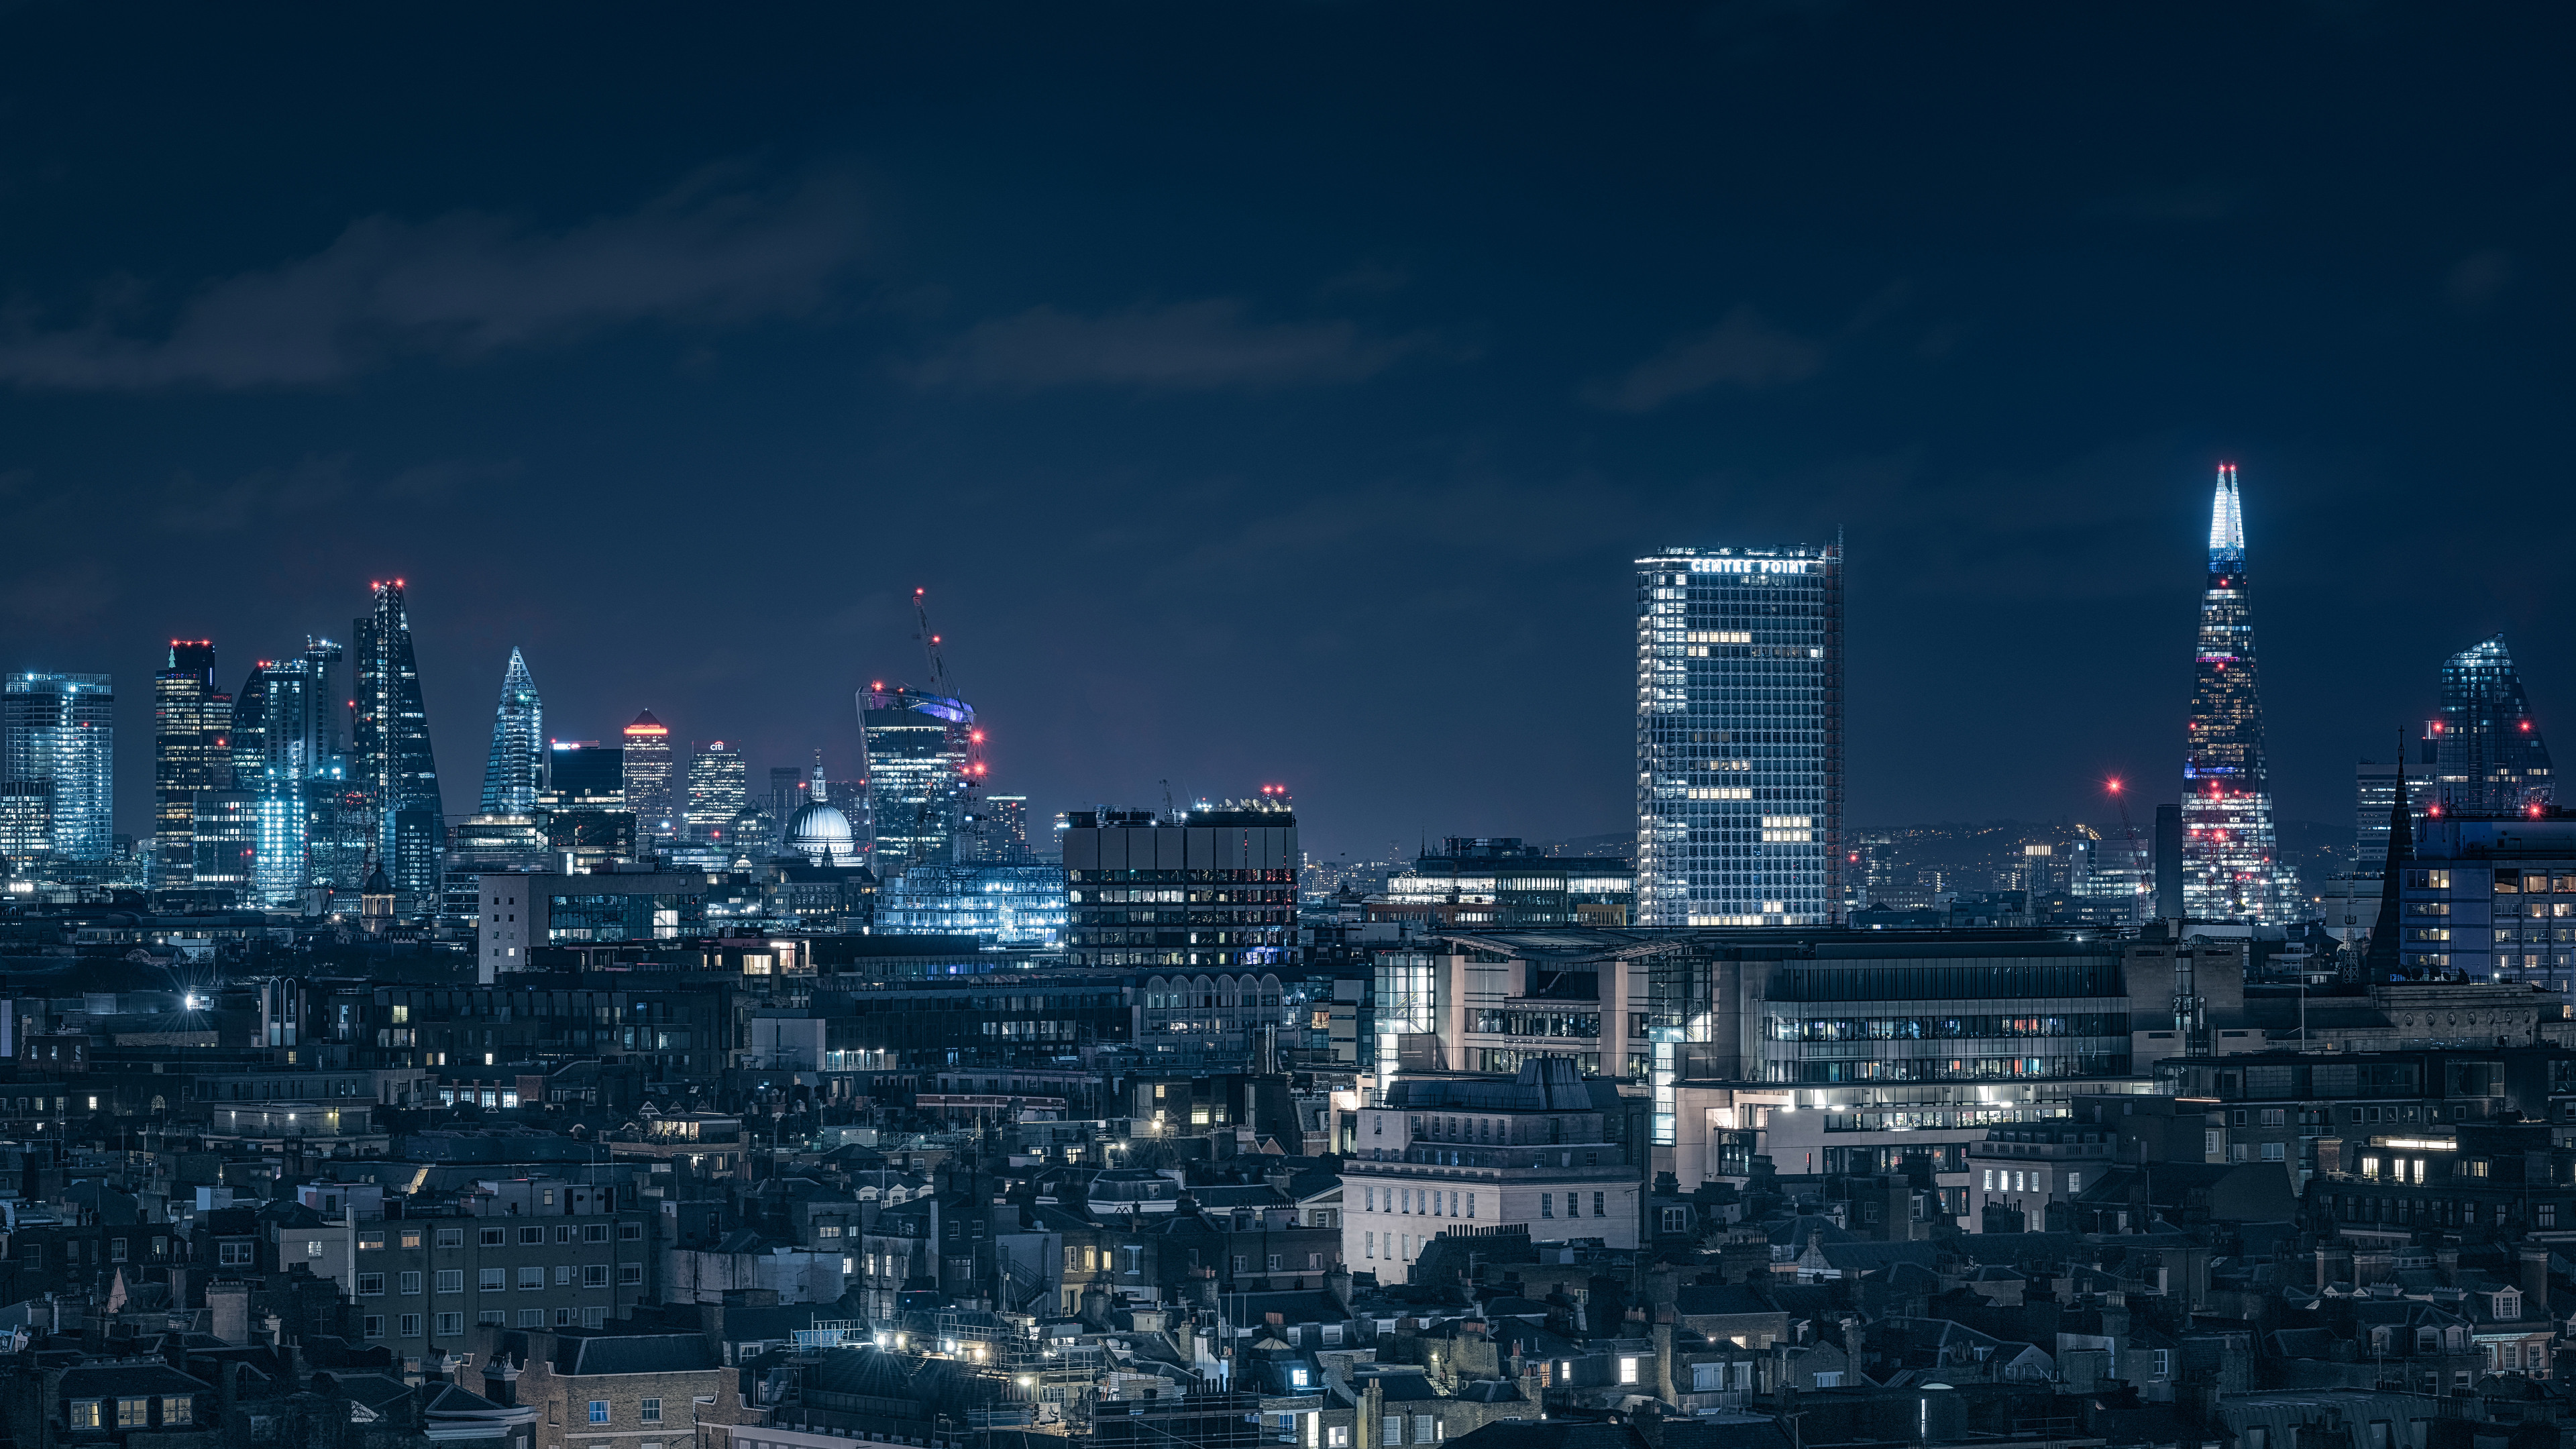 Wallpaper 4k London Chasing Skylines Nightscape 4k 4k Wallpapers